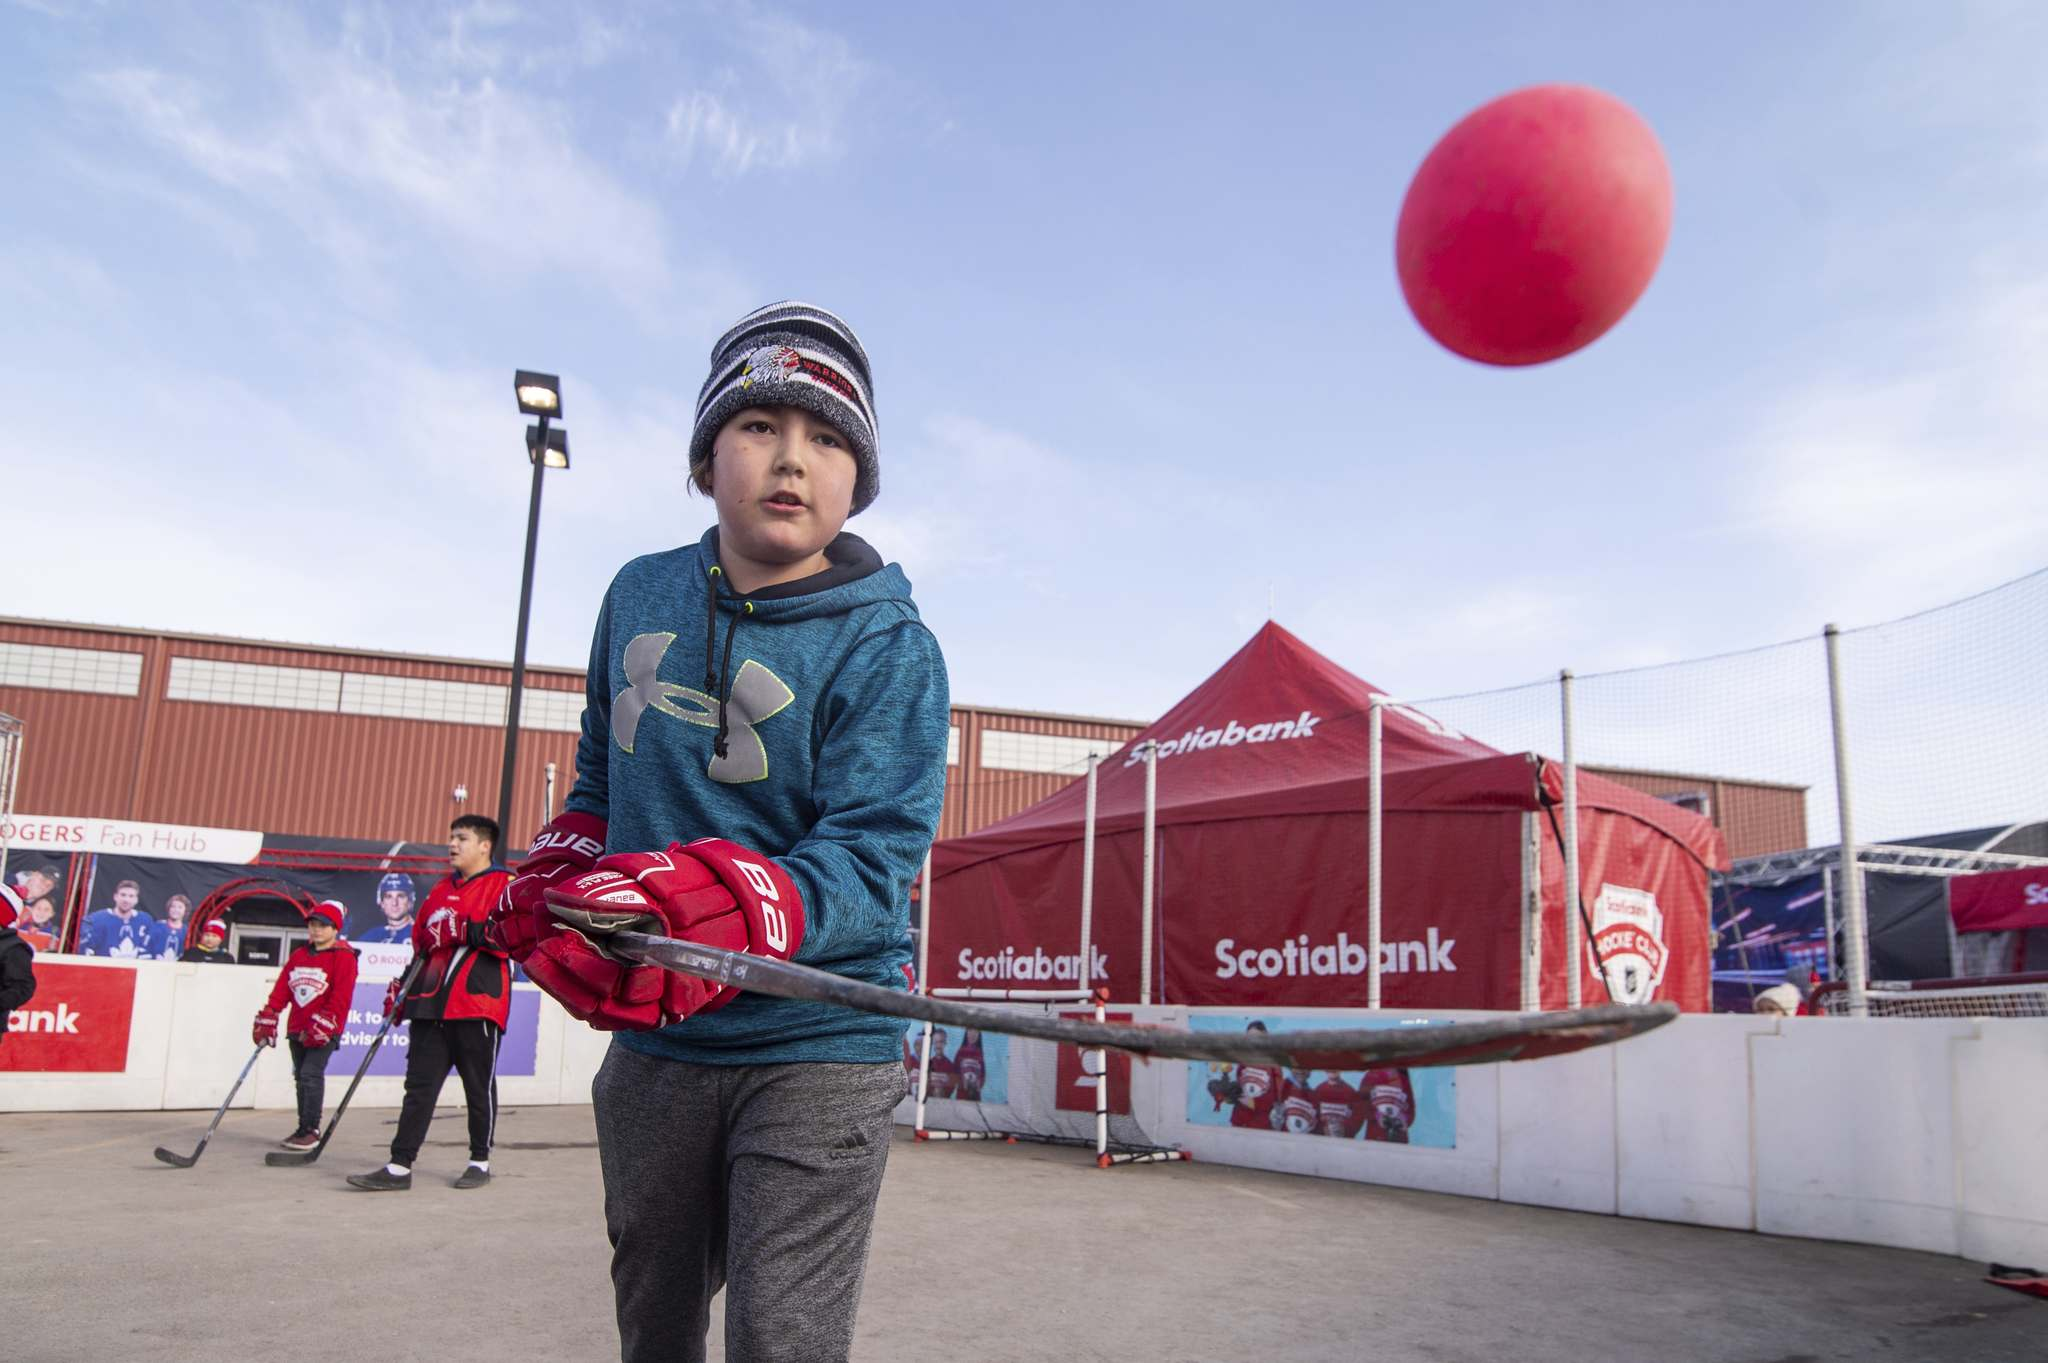 Mike Sudoma / Winnipeg Free Press</p><p>The Rogers Hometown Hockey event at Peguis First Nation attracted residents of all ages, including Laiden Sutherland who joined in a game of ball hockey.</p></p>